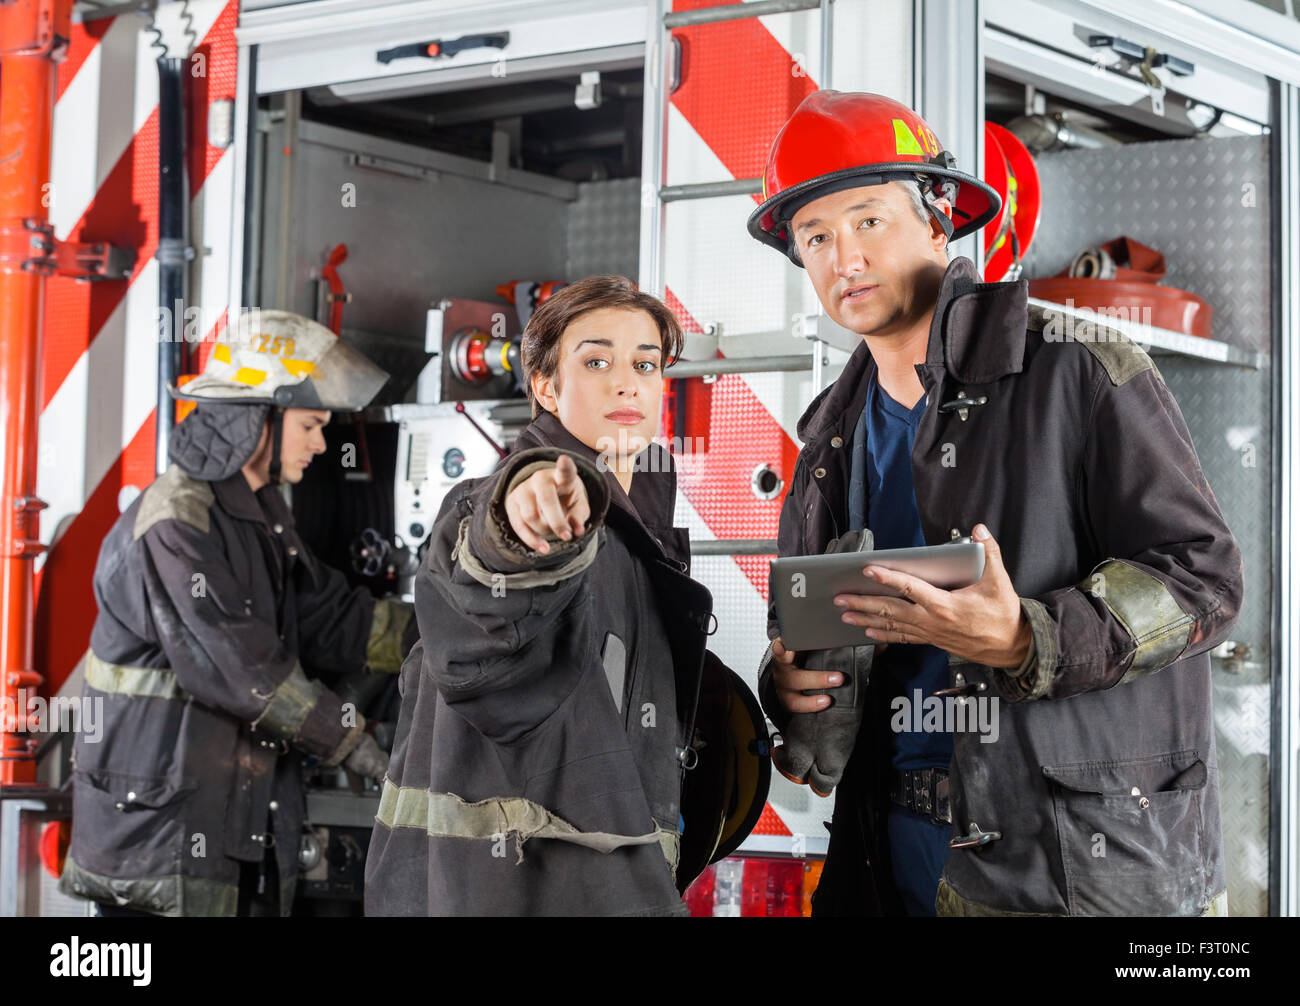 Firefighter Showing Something To Colleague At Fire Station - Stock Image